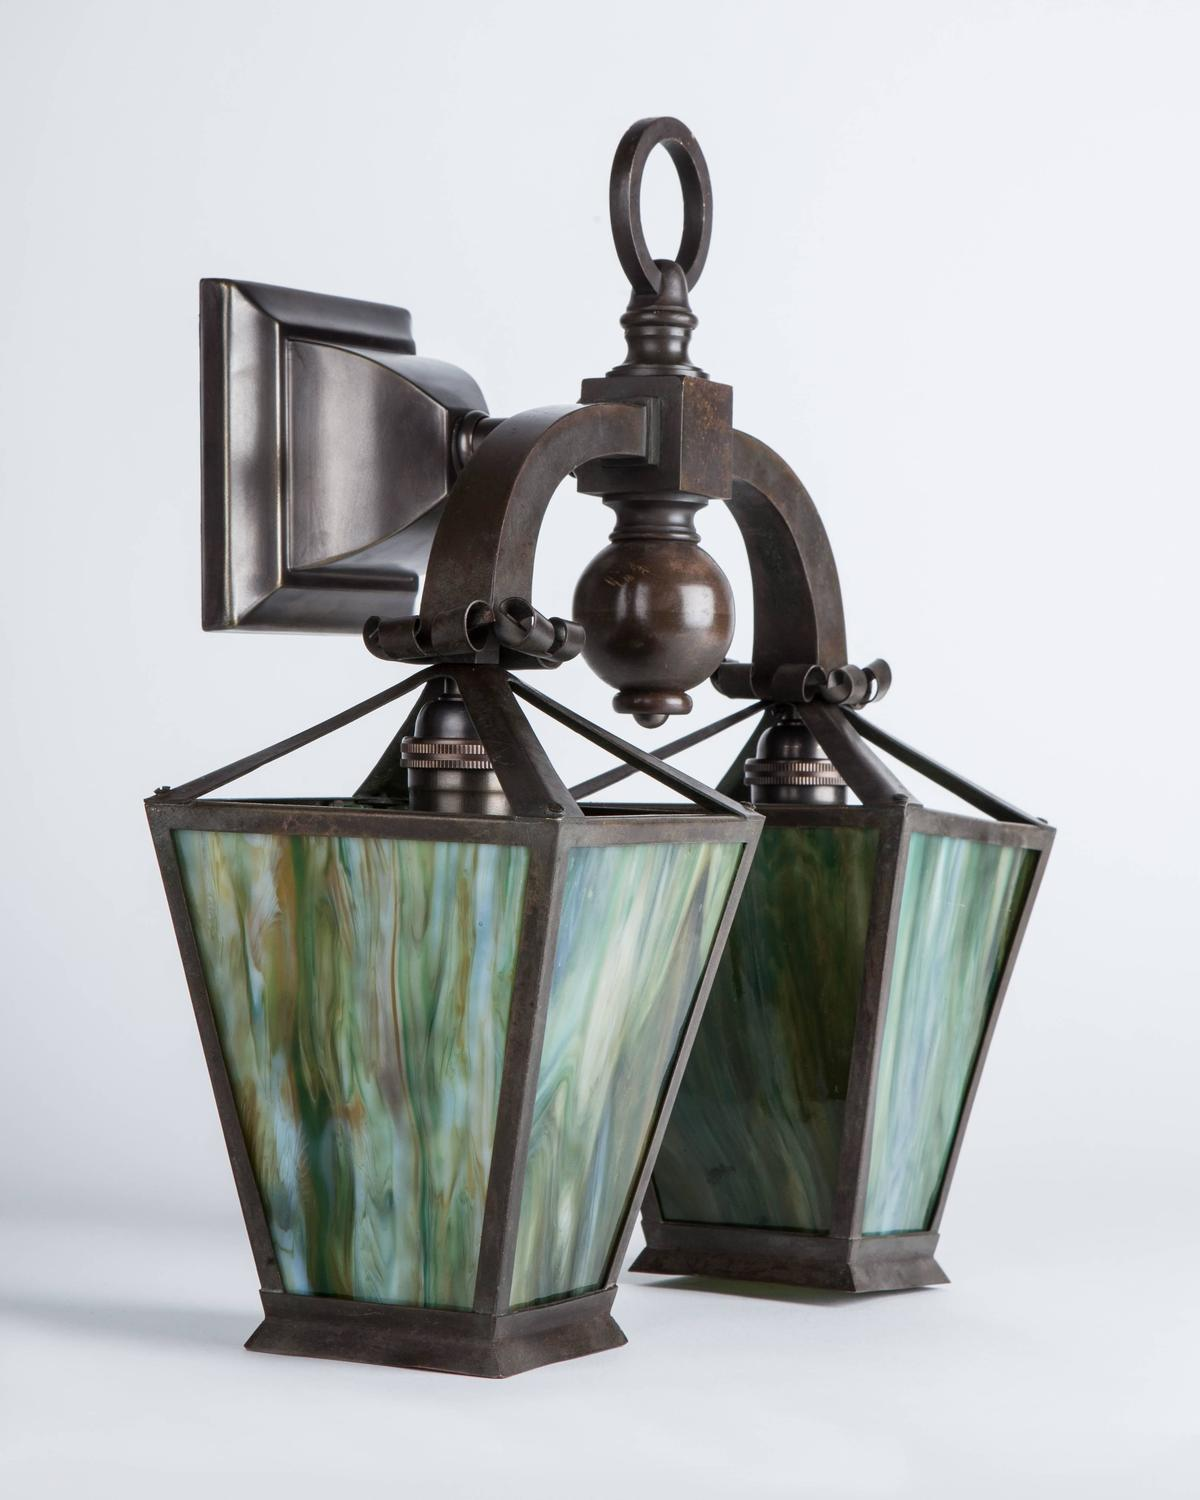 Wall Sconces Art Glass : Arts and Crafts Green Art Glass and Brass Sconces, Circa 1920 For Sale at 1stdibs